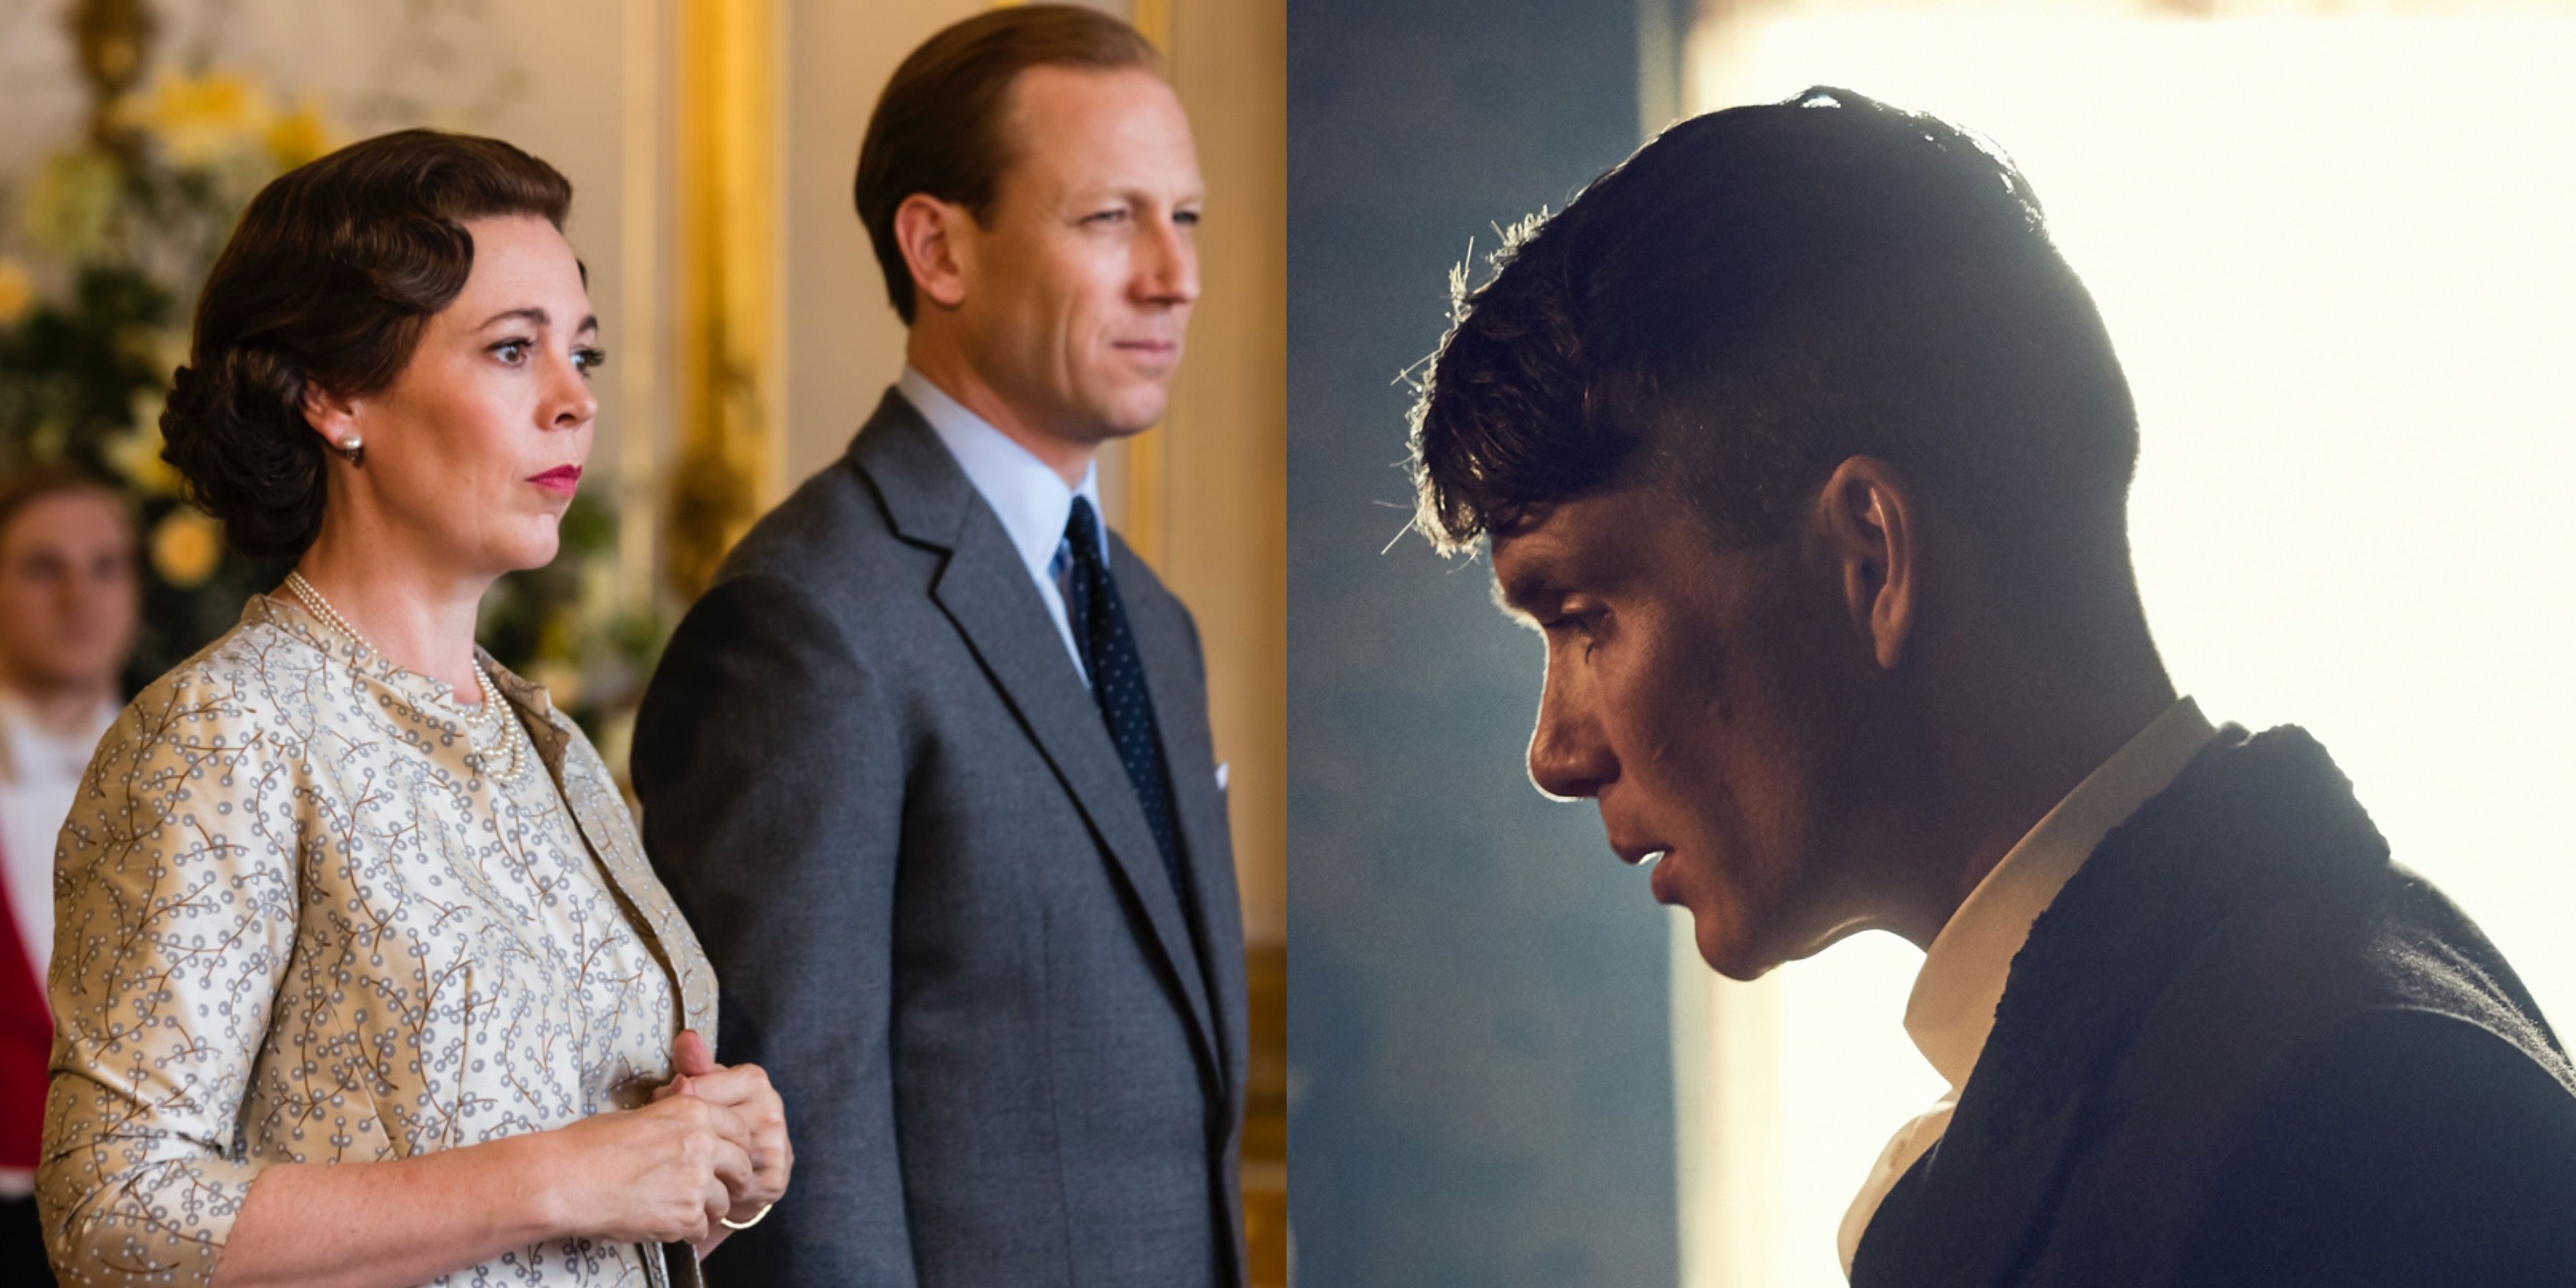 The Best British Shows on Netflix That Americans Might Be Missing Out On